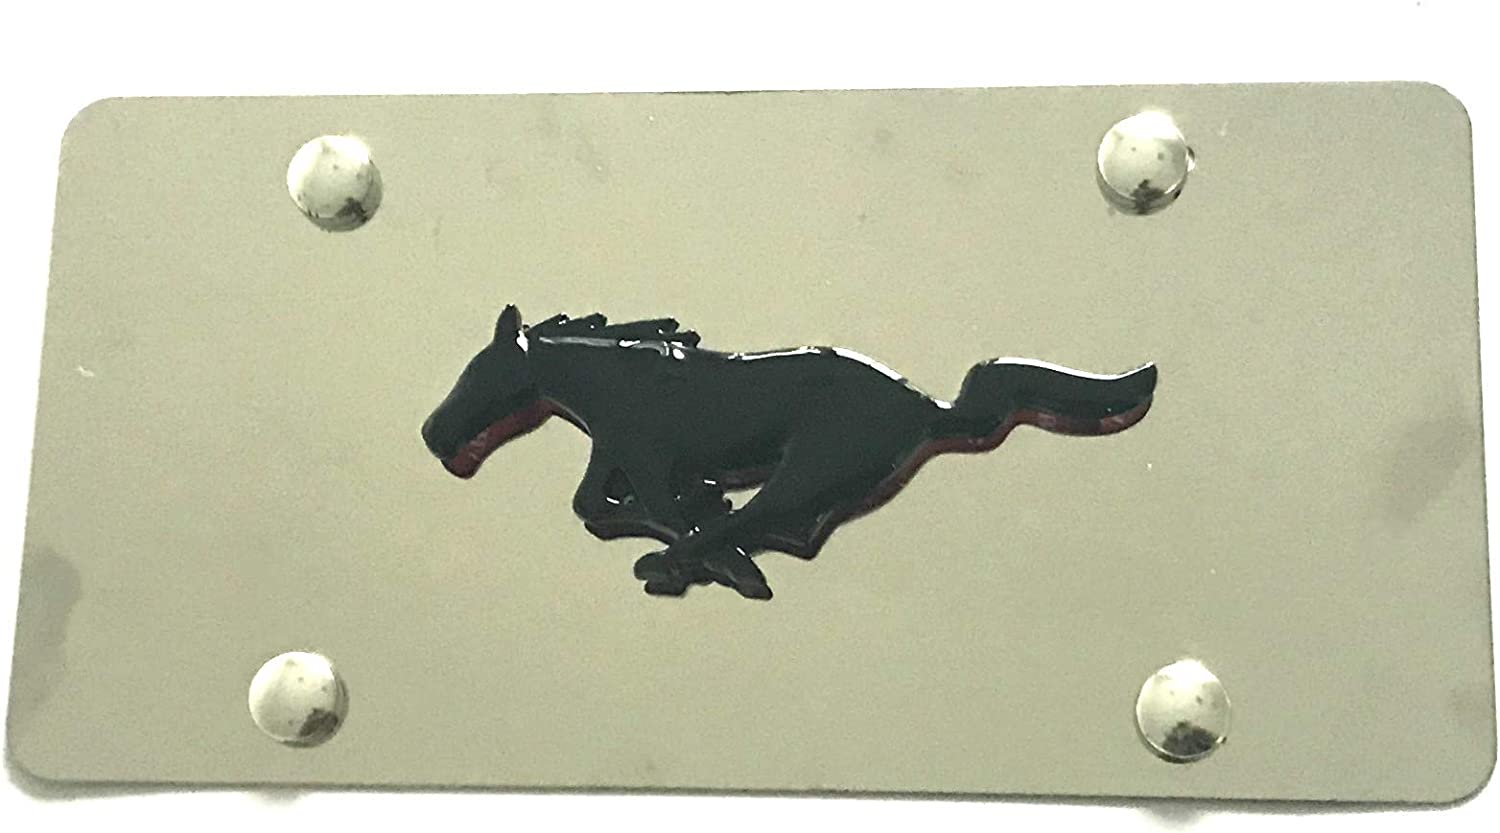 Kimoo Custom 3D Mustang Emblem Stainless Steel License Plate Tag Frame for Mustang All Black